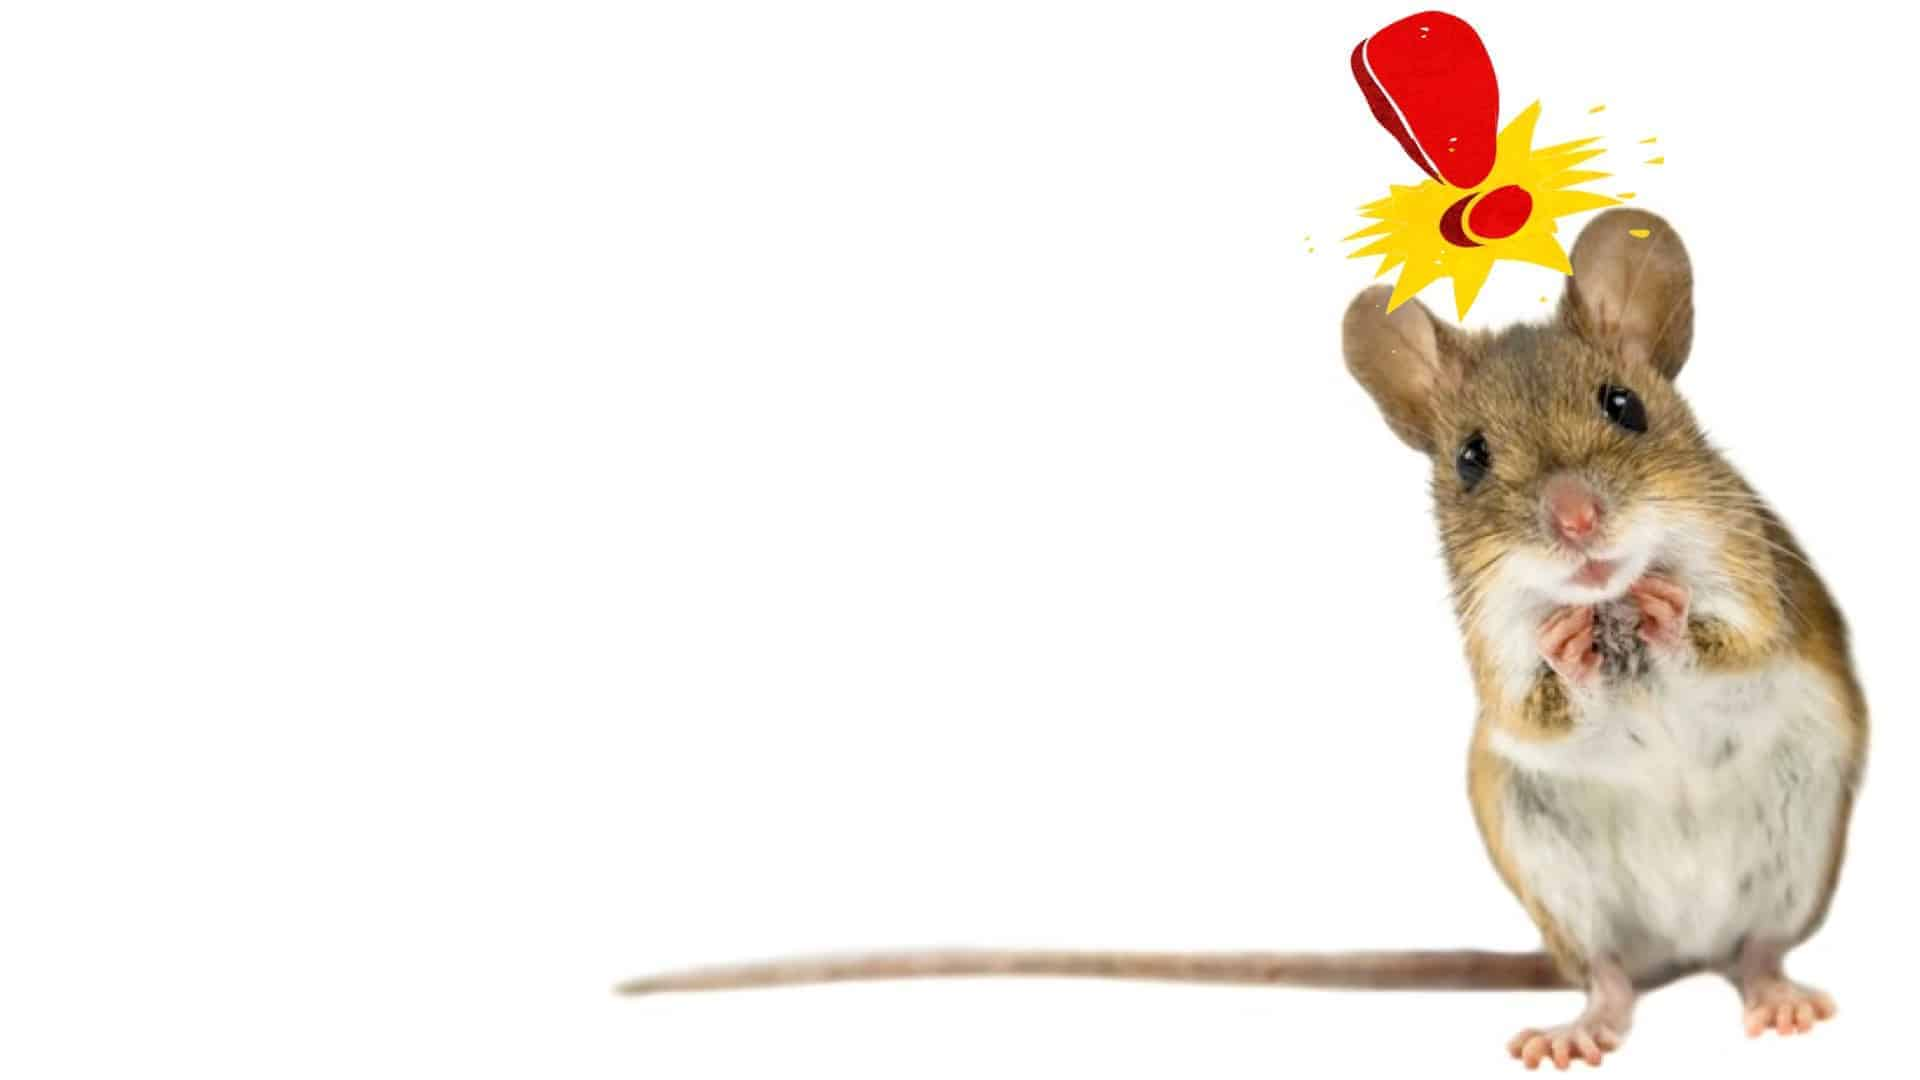 A nervous looking field mouse, standing upon his hind legs is seen. An exclamation mark in red is above his head to indicate his alarm.